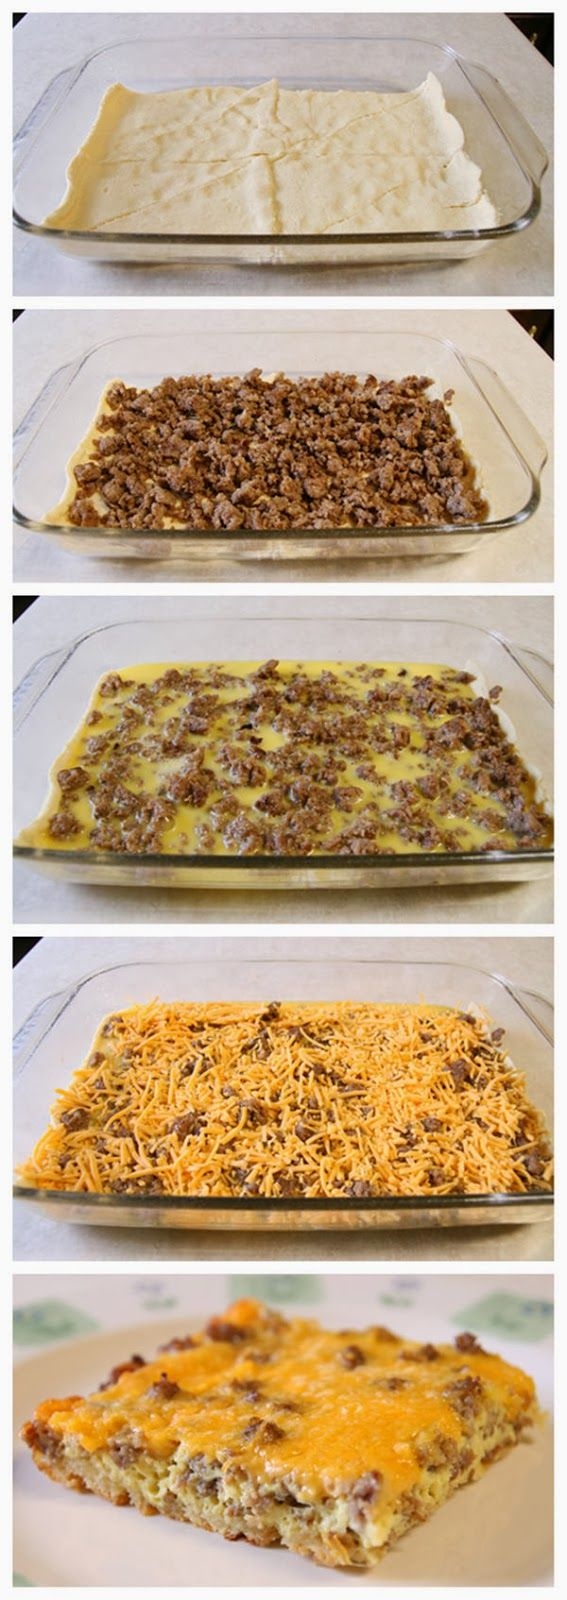 Breakfast Casserole. ♦♦♦ •1 pkg croissant rolls  •1 lb mild sausage   •6 eggs, beaten  •2 cups shredded cheddar cheese  ♦♦♦    Preheat oven to 350. Spray 9×13 baking dish with Pam. Brown sausage in skillet. Spread croissant dough in bottom of 9×13 dish. Add sausage, then pour eggs over sausage. Generously top with cheese. Bake at 350 for 30 minutes.